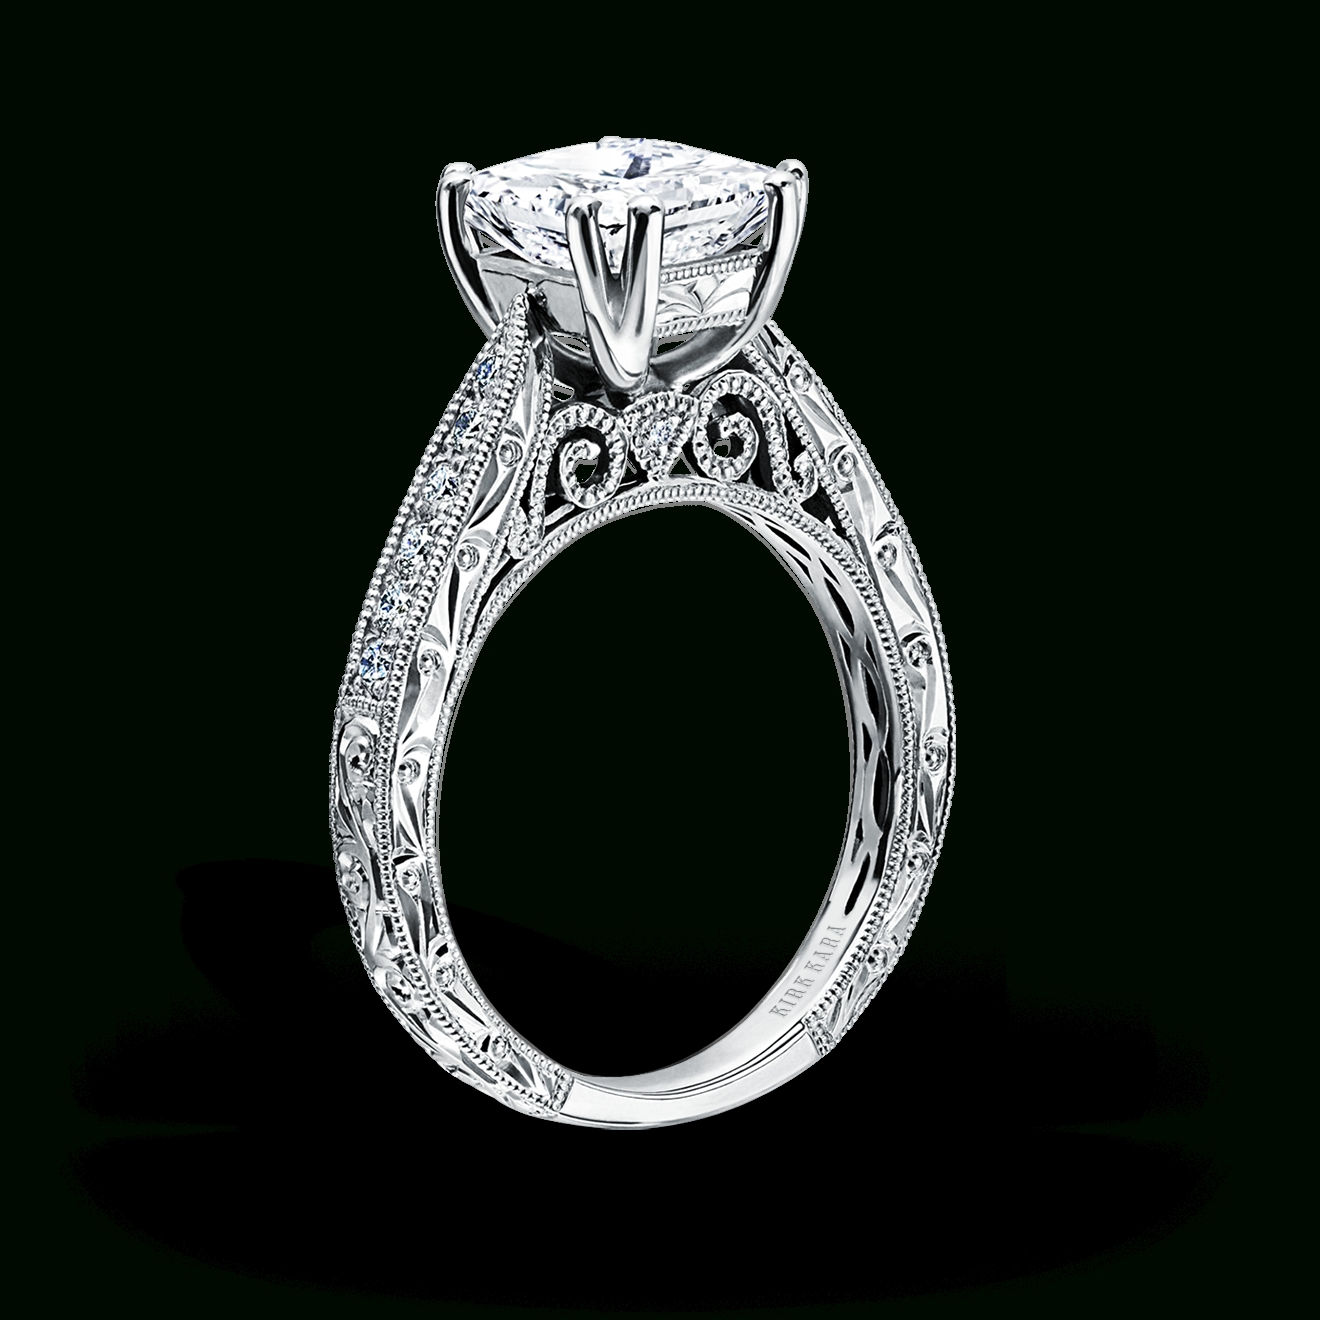 Vintage Inspired Filigree Diamond Engagement Ringskirk Kara Within Antique Inspired Wedding Rings (Gallery 11 of 15)